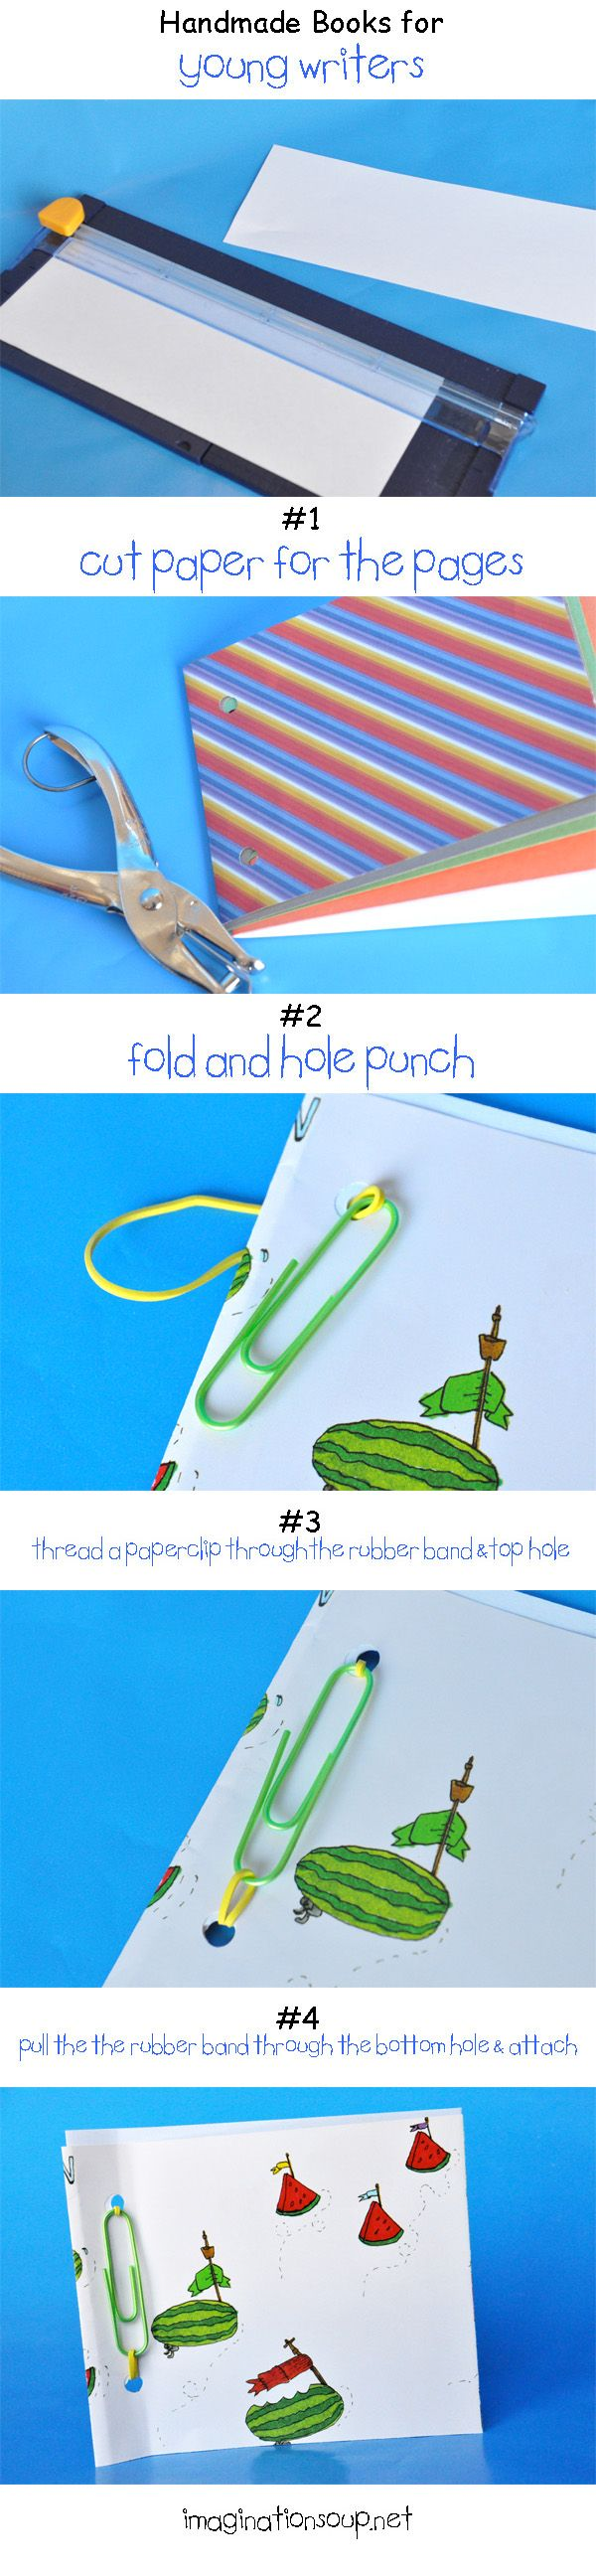 Easy DIY handmade books - detective notebook and pencil